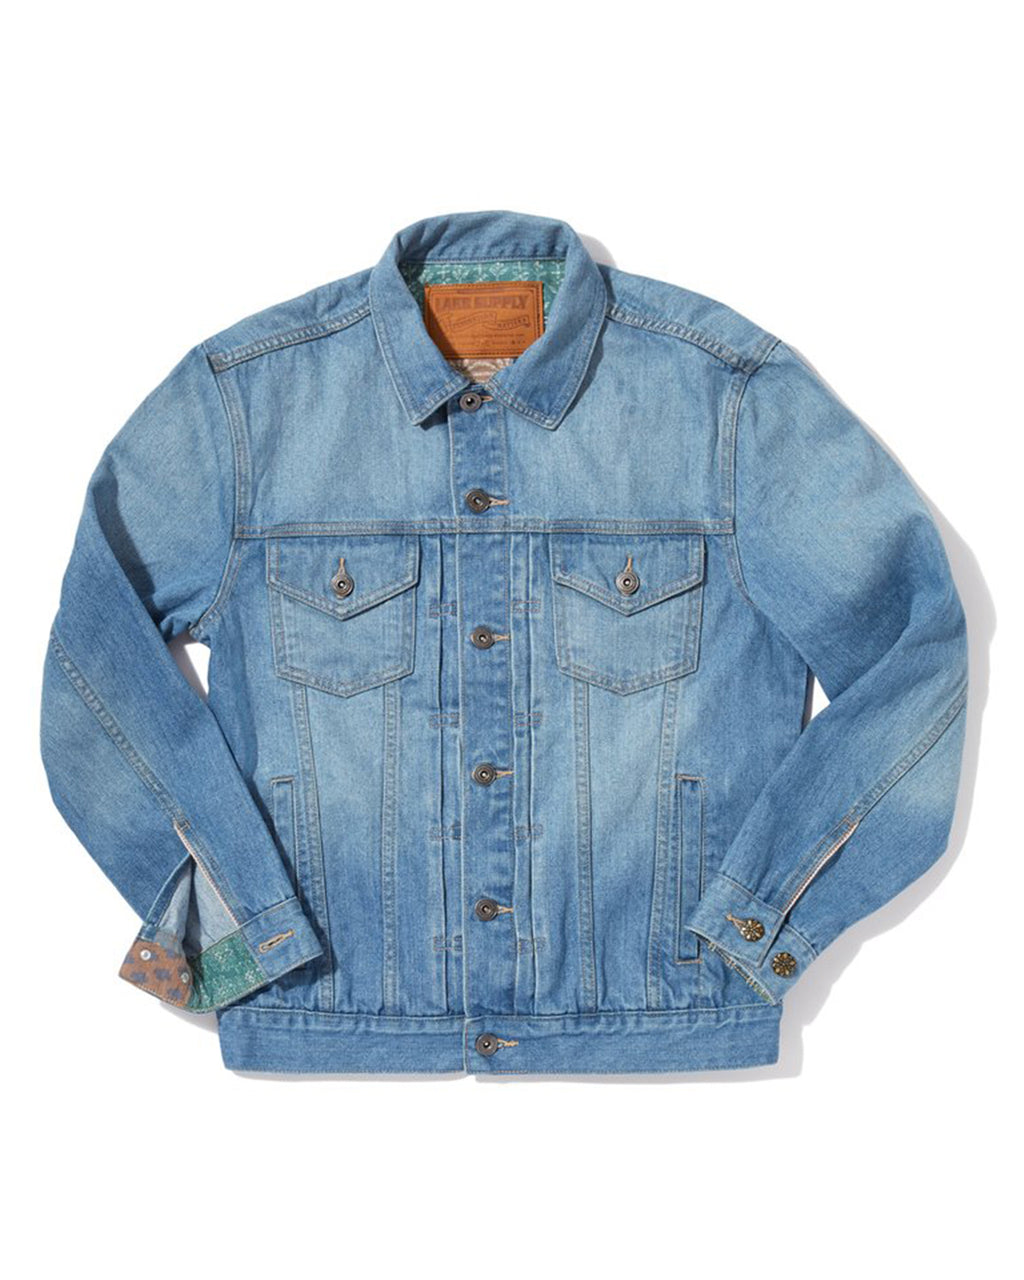 Classic Denim Jacket - Patchwork Light Blue